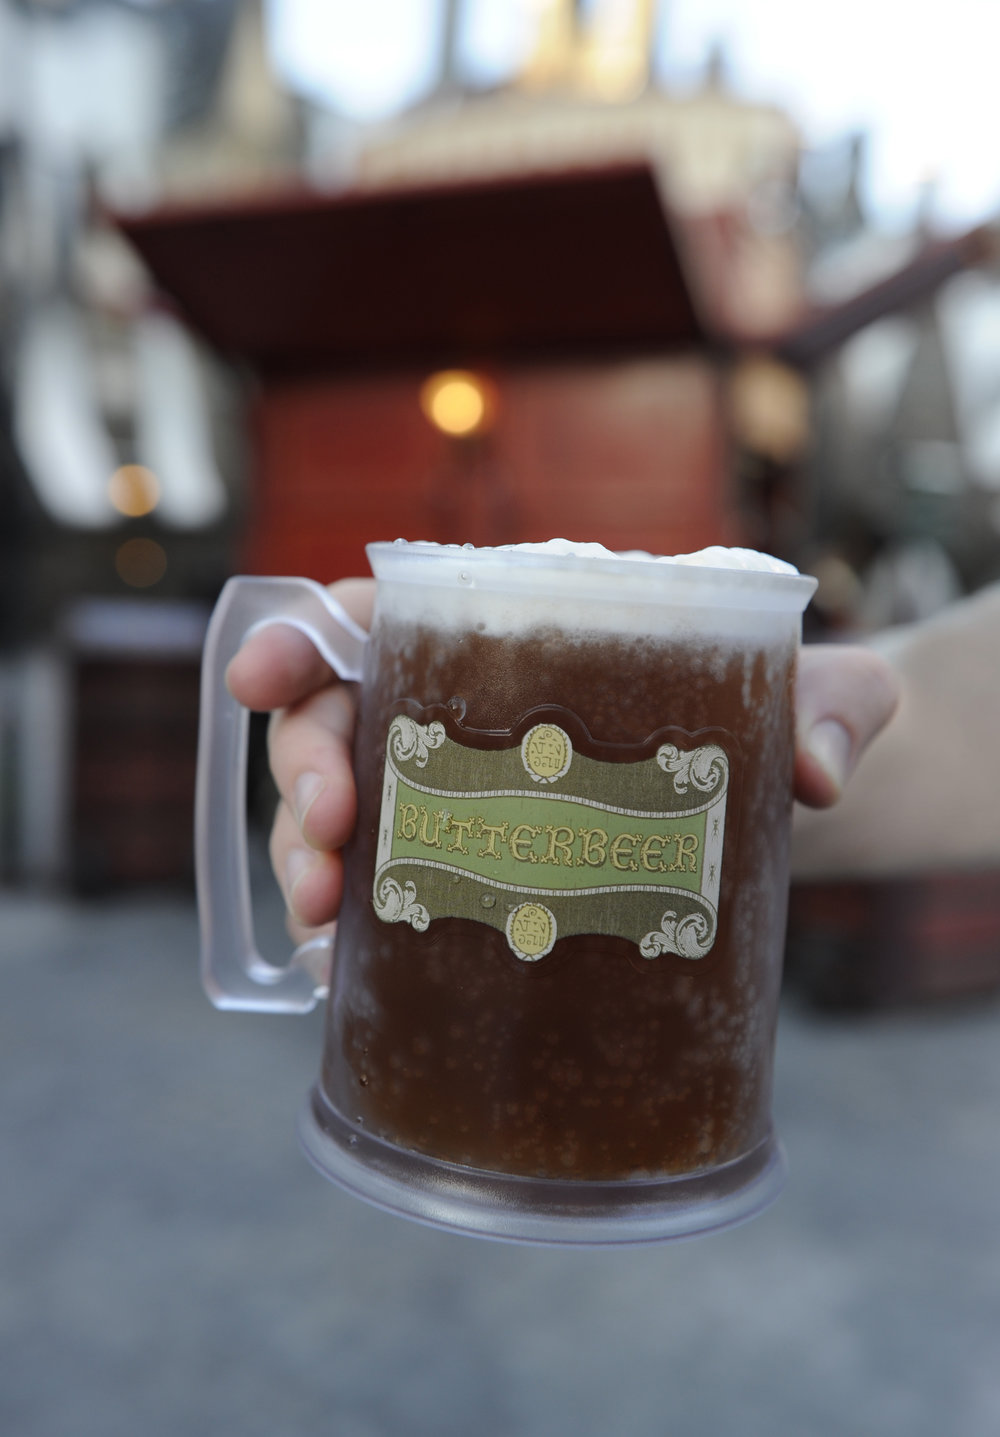 3/Butterbeer & Honeydukes